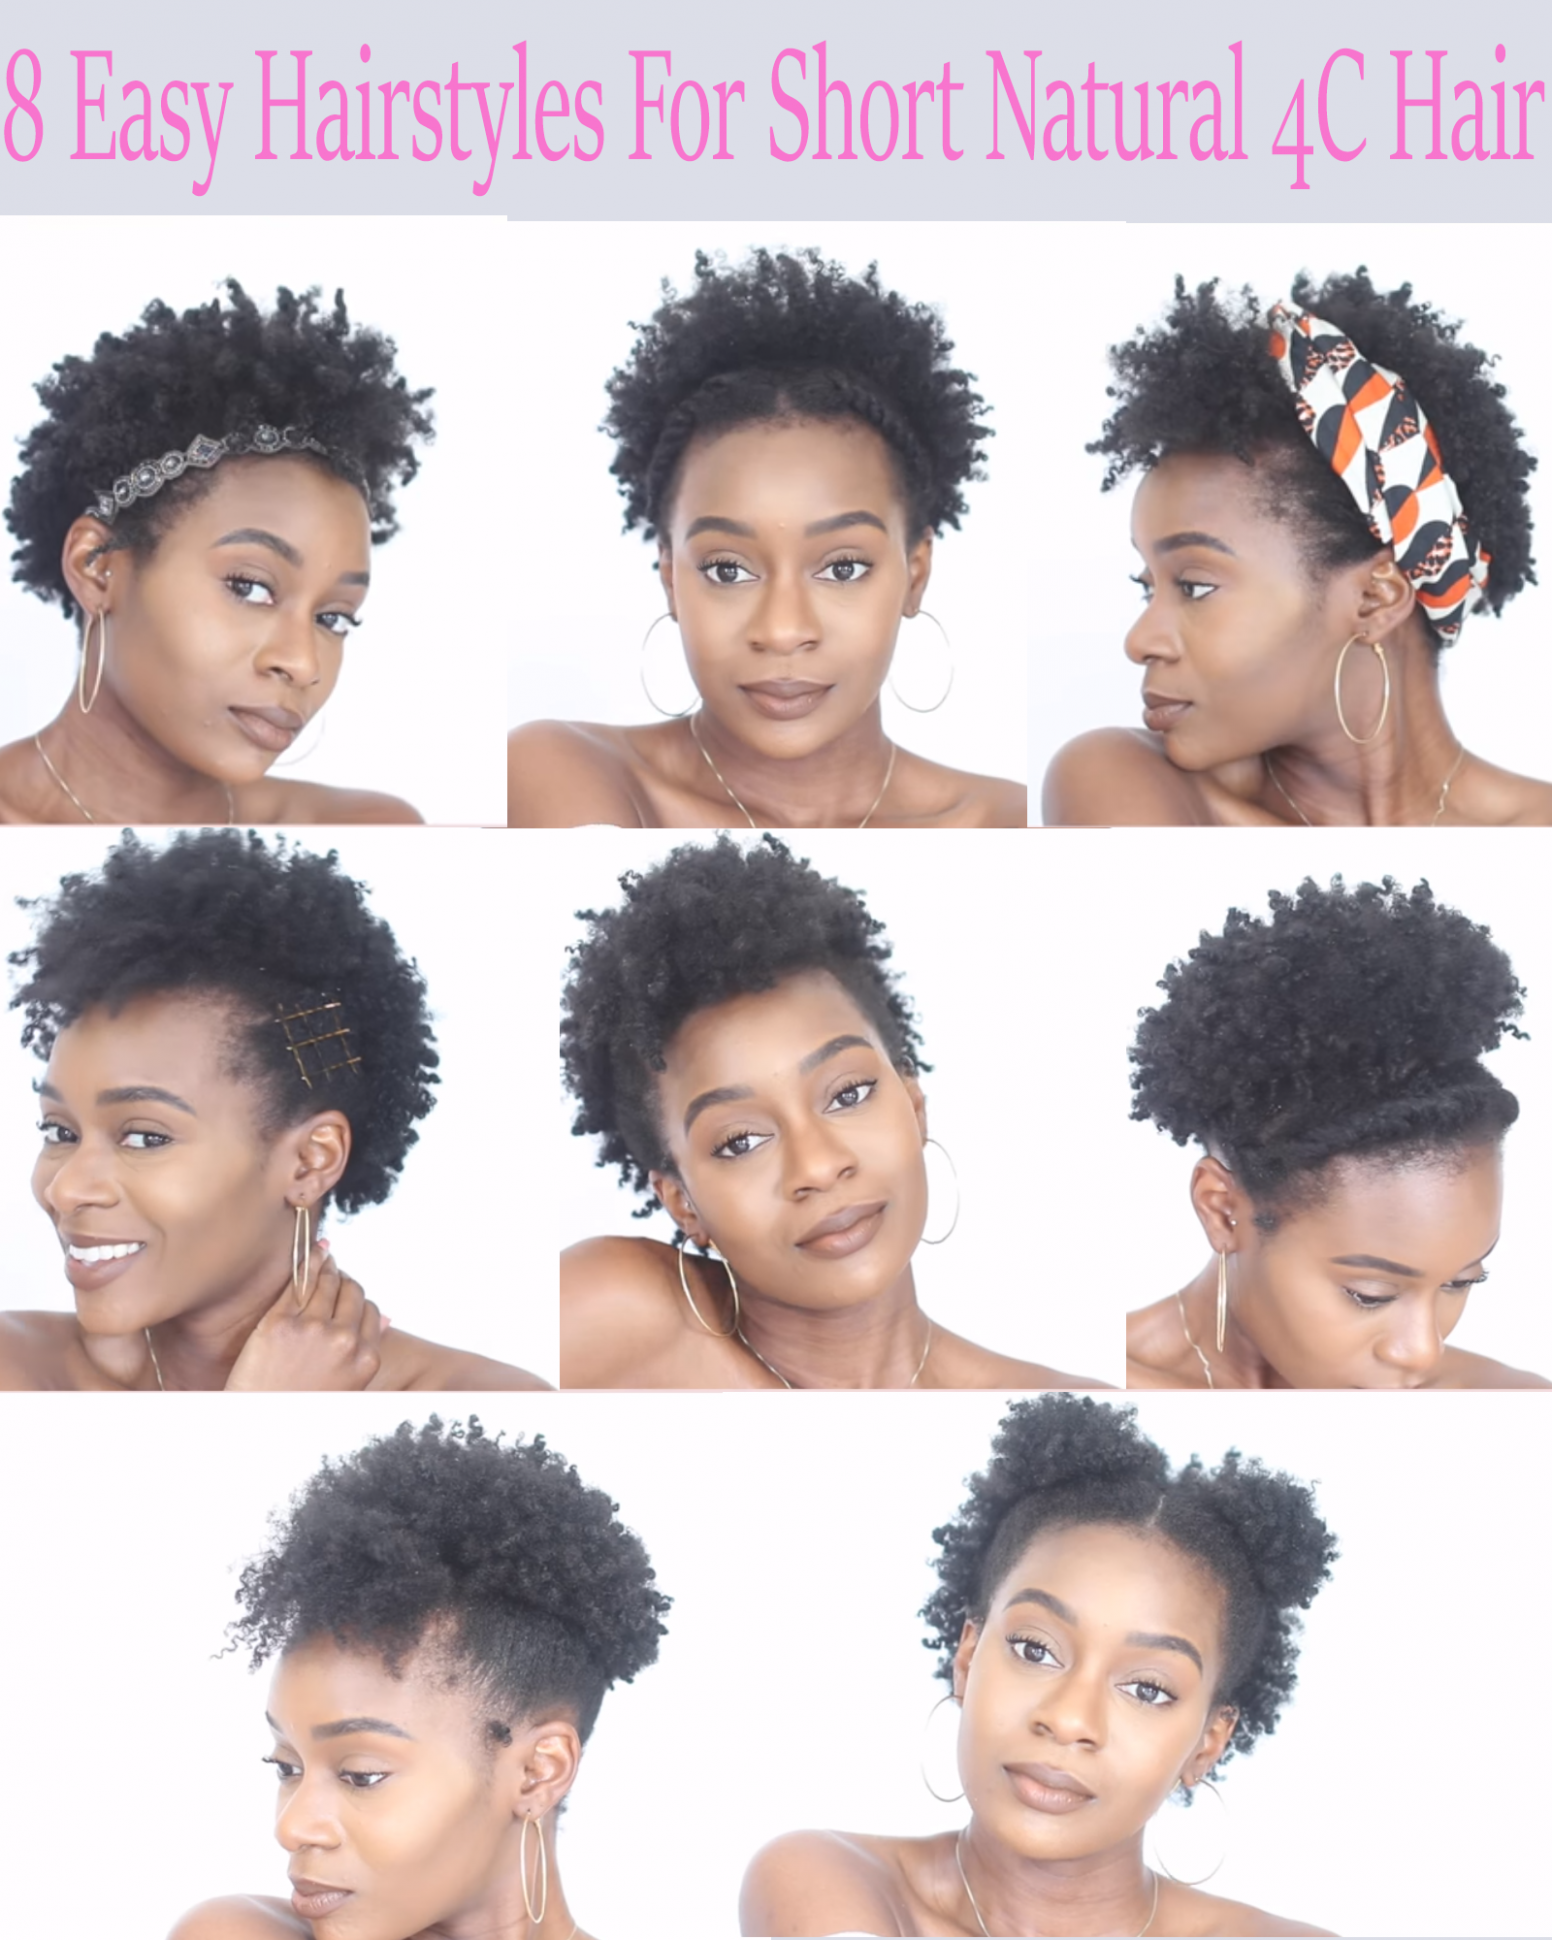 8 Easy Protective Hairstyles For Short Natural 8C Hair That Will Protective Hairstyles For Short Hair